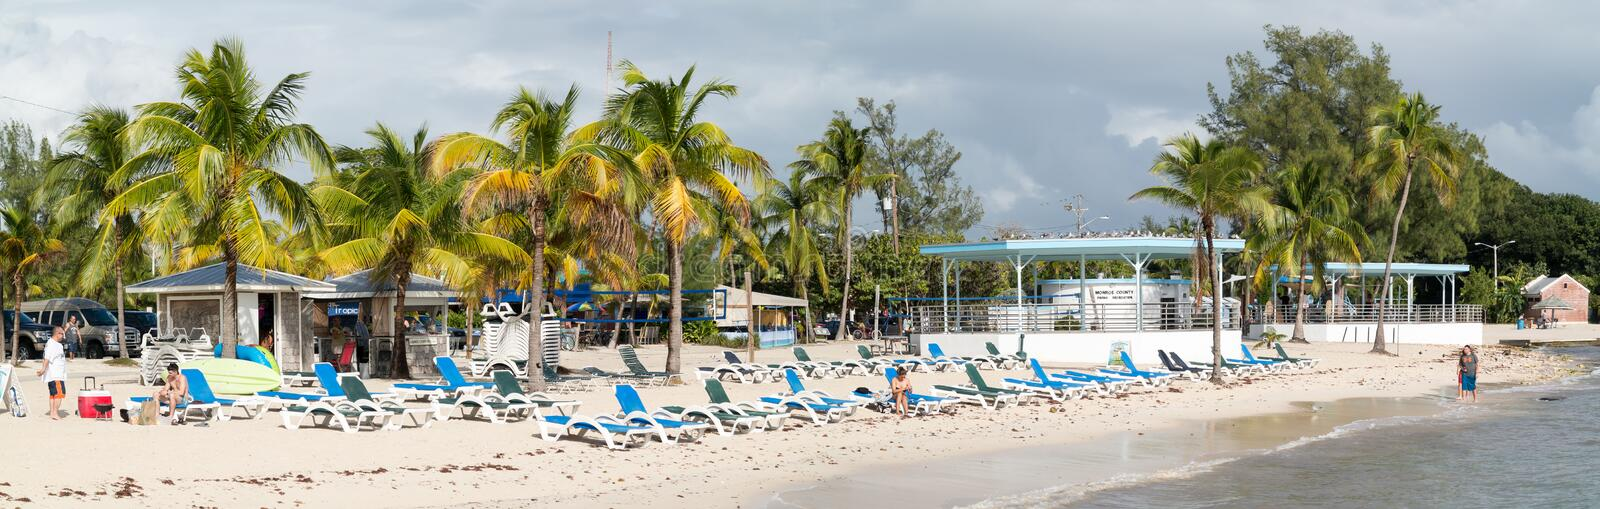 Panorama Higgs Beach in Key West, Florida Keys. Panorama of Higgs Beach with people at south coast of Key West, Florida Keys, USA stock photo